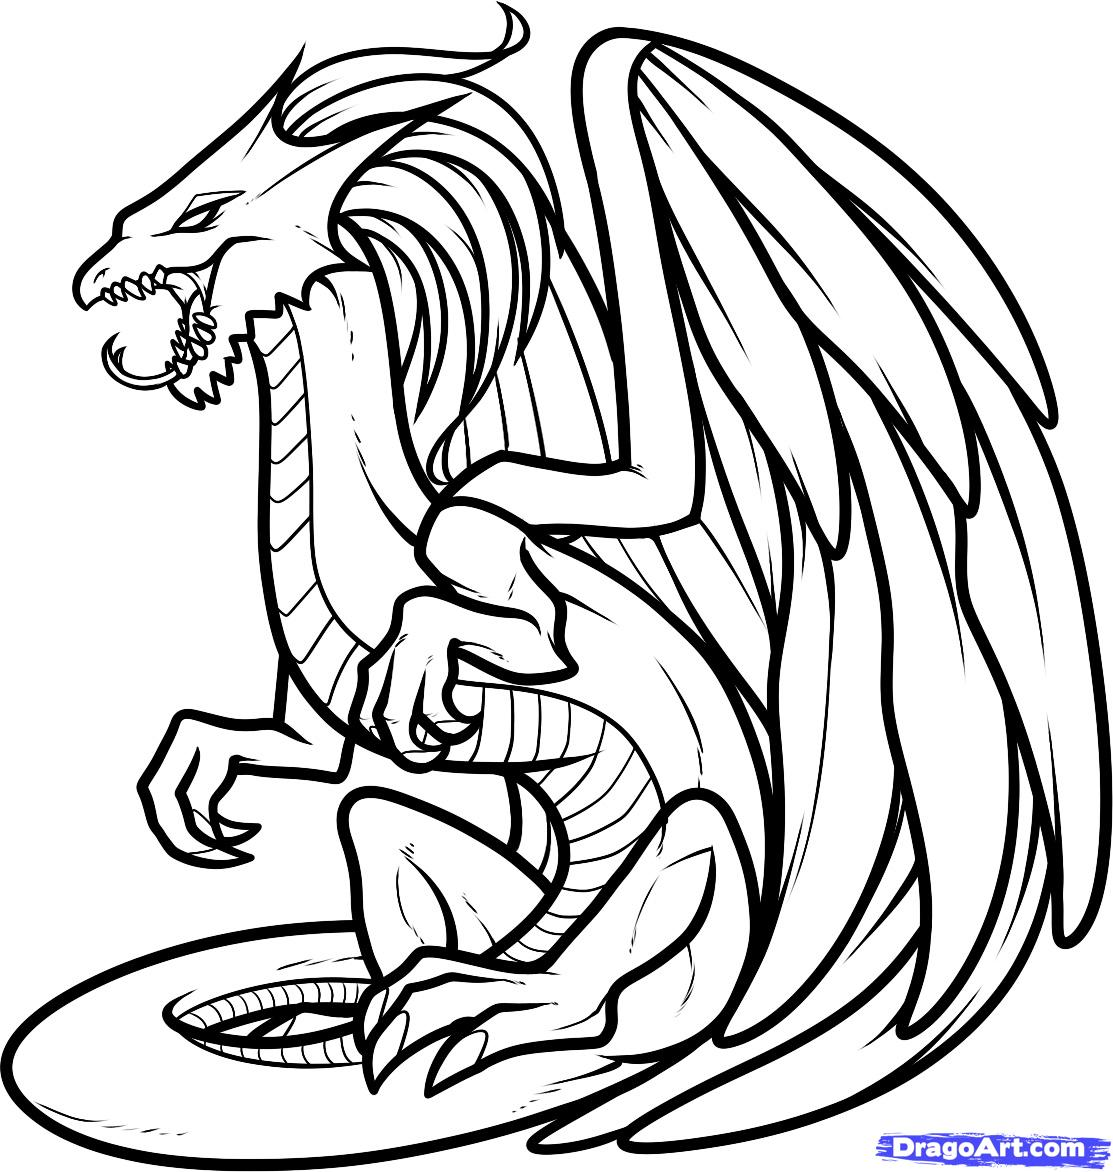 flying dragon dragon coloring pages flying dragon colouring sheet my free colouring pages dragon dragon flying pages coloring